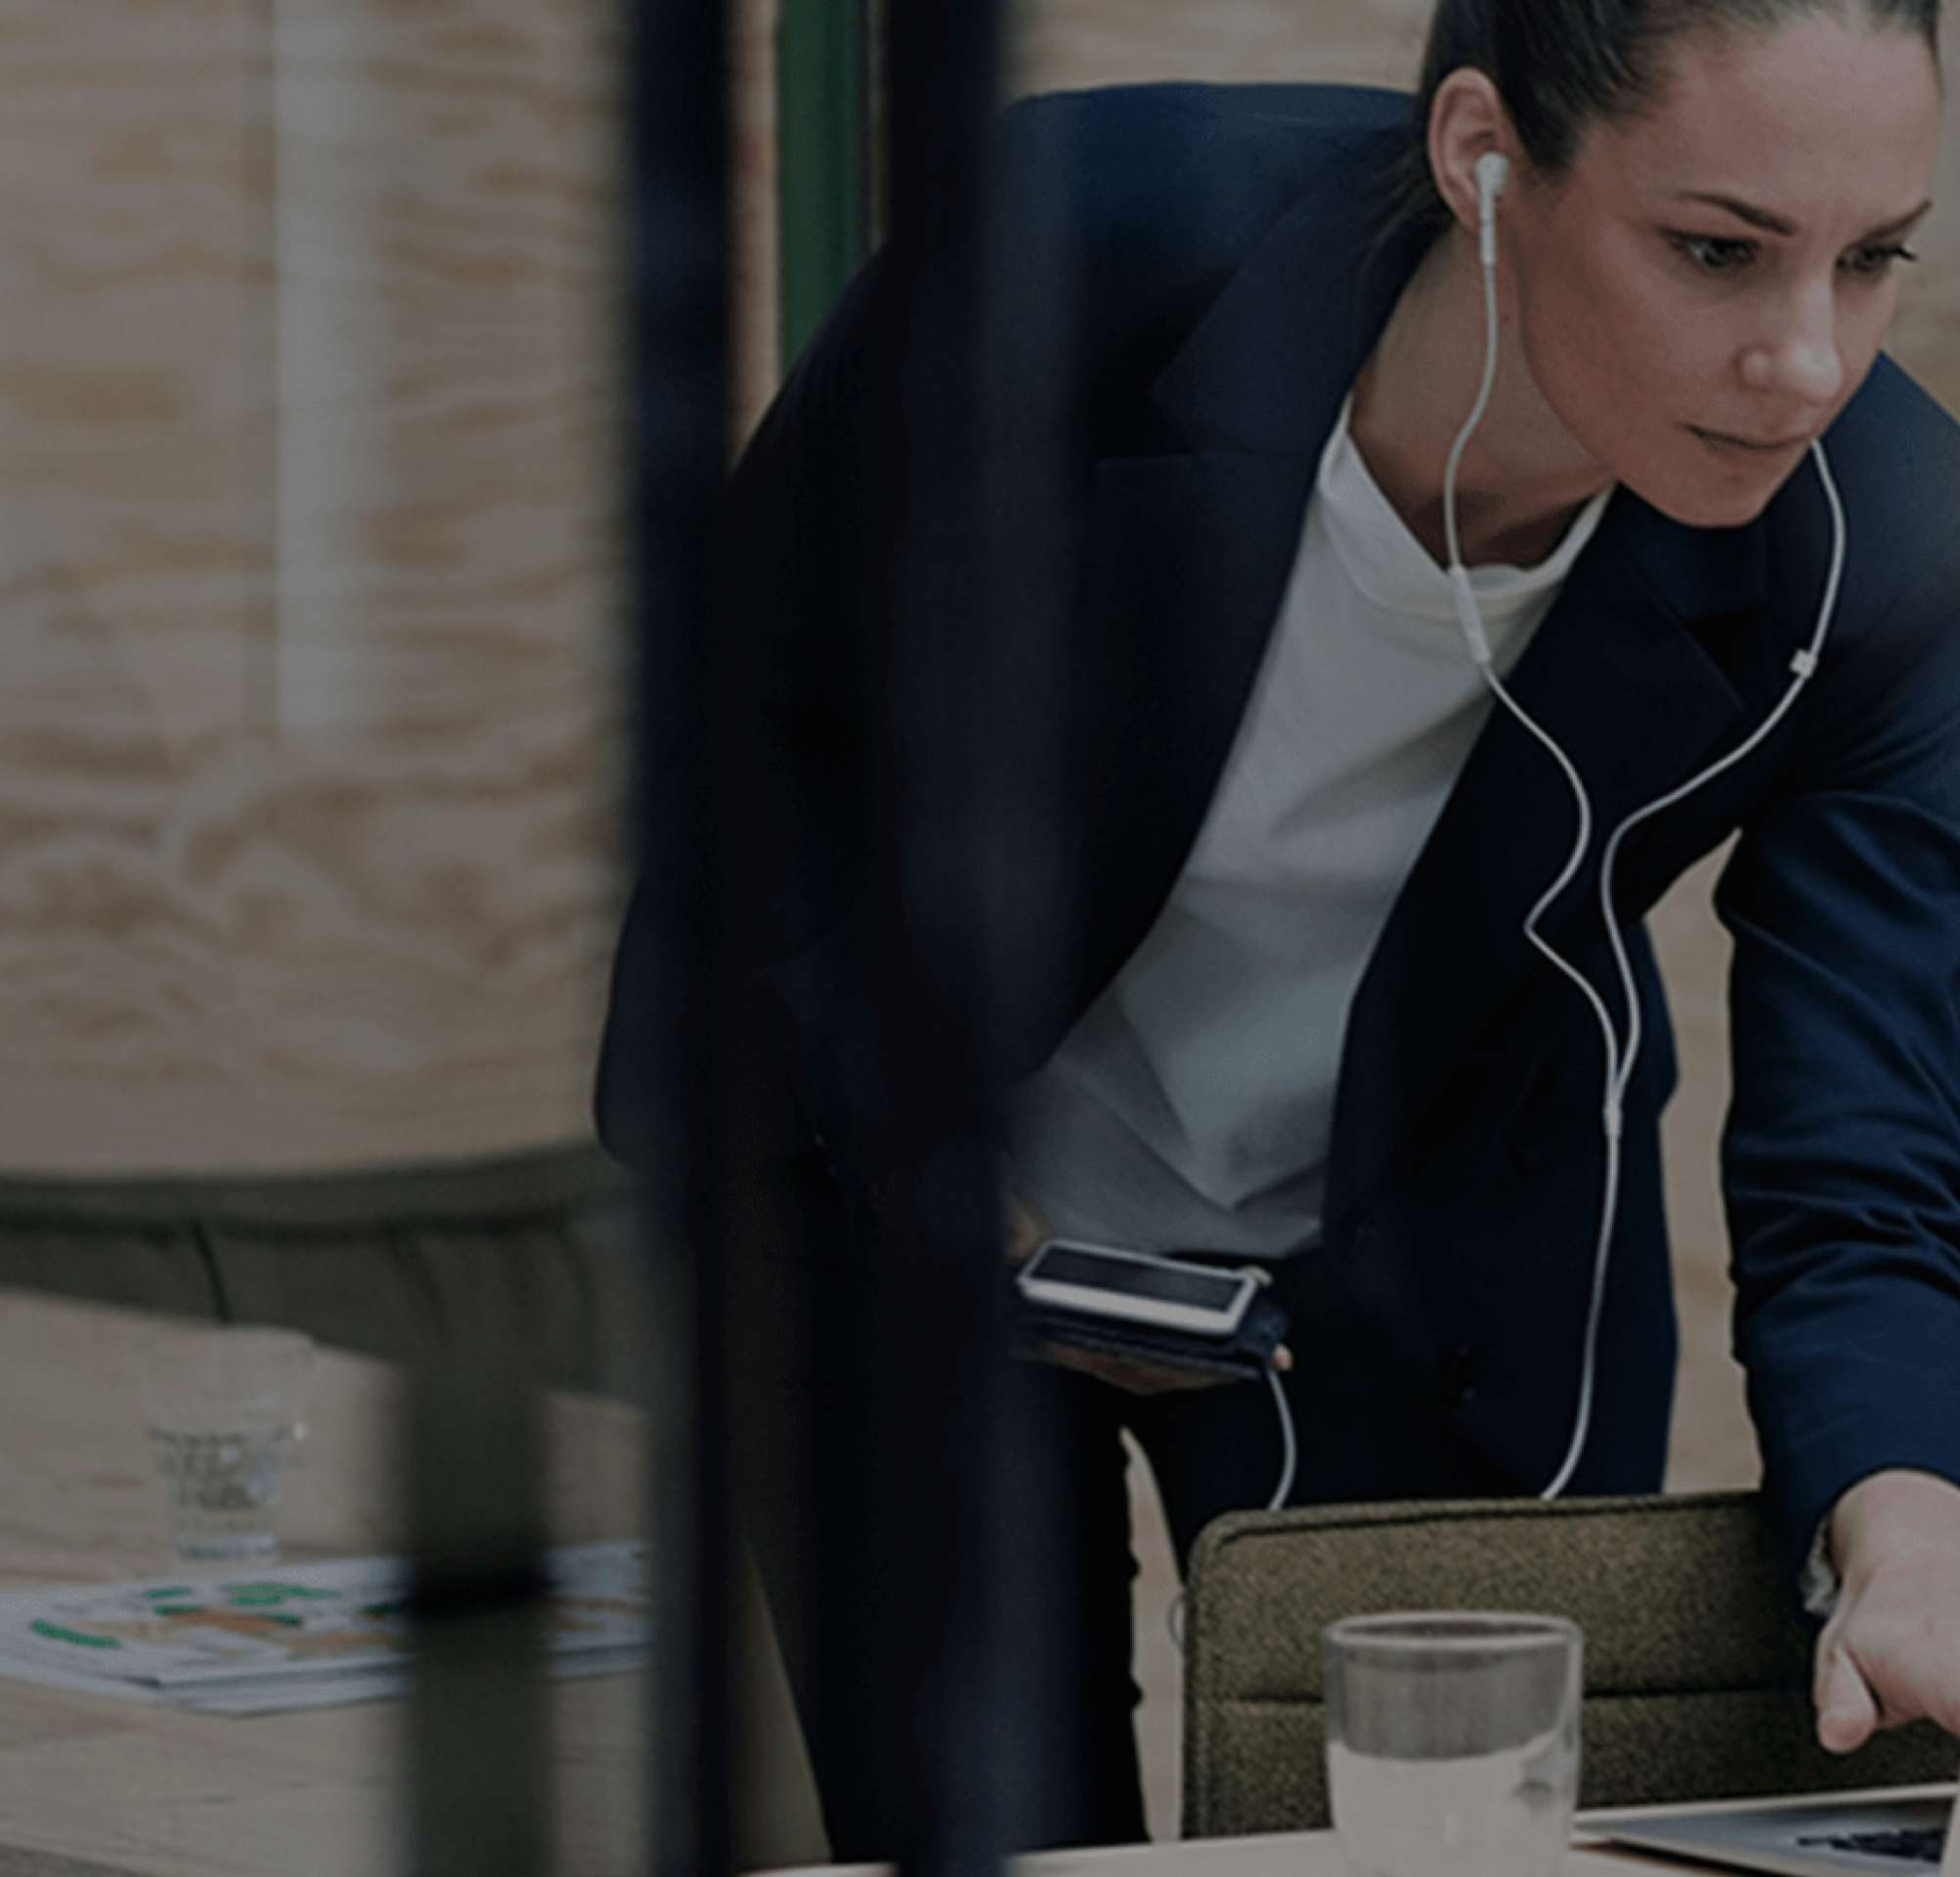 Woman with earbuds working on a laptop and holding her phone.